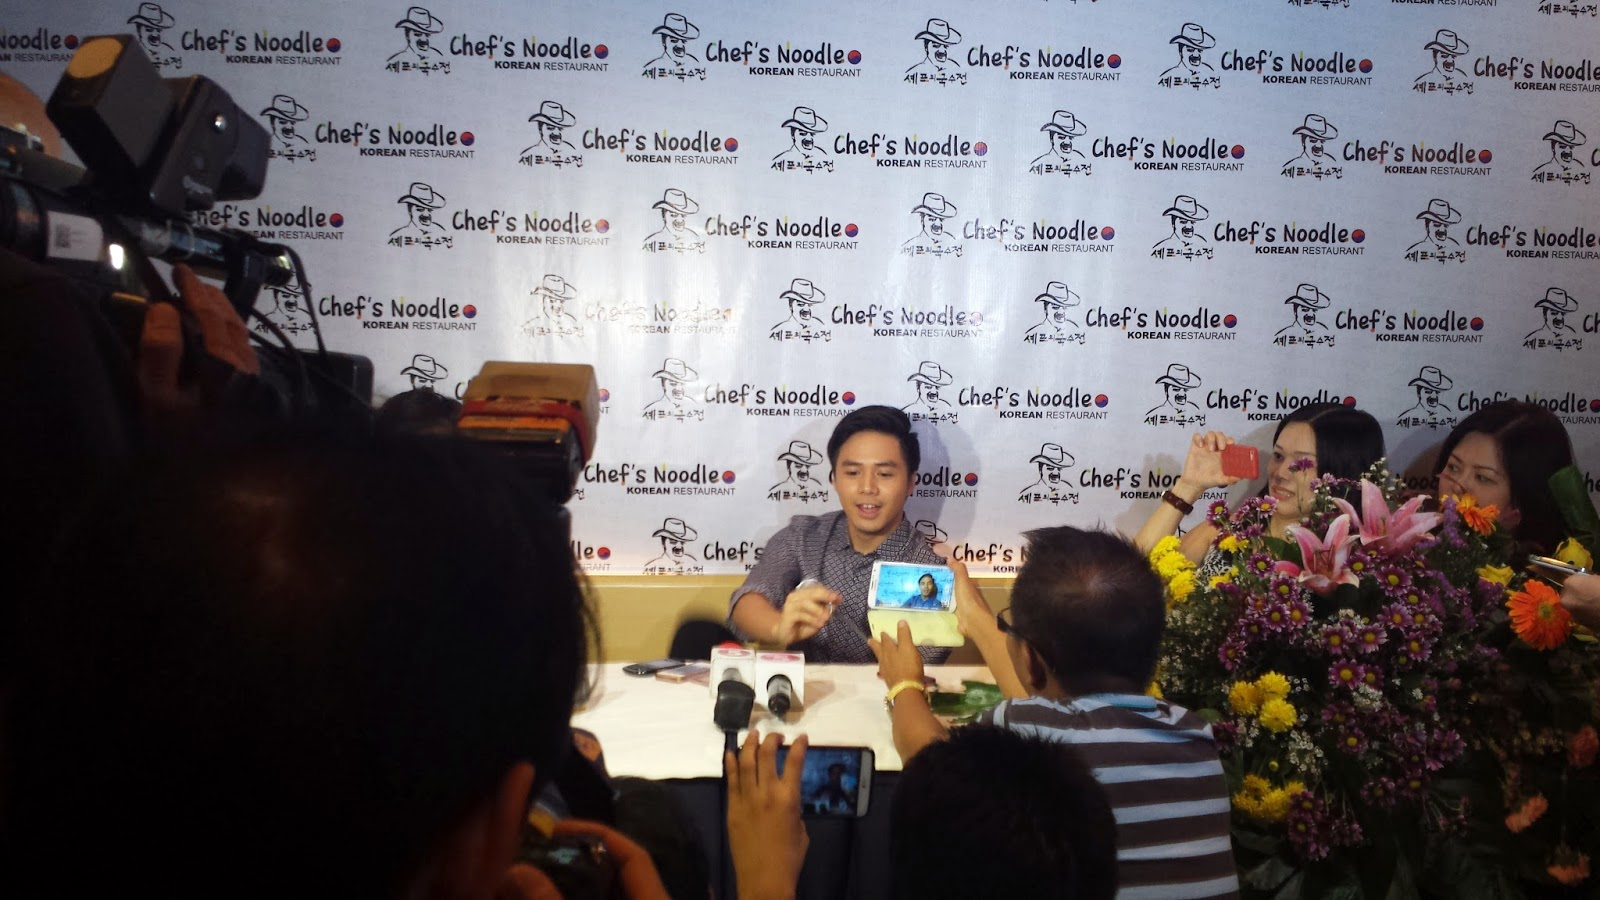 Sam Concepcion is the New Endorser of Chef's Noodle Philippines